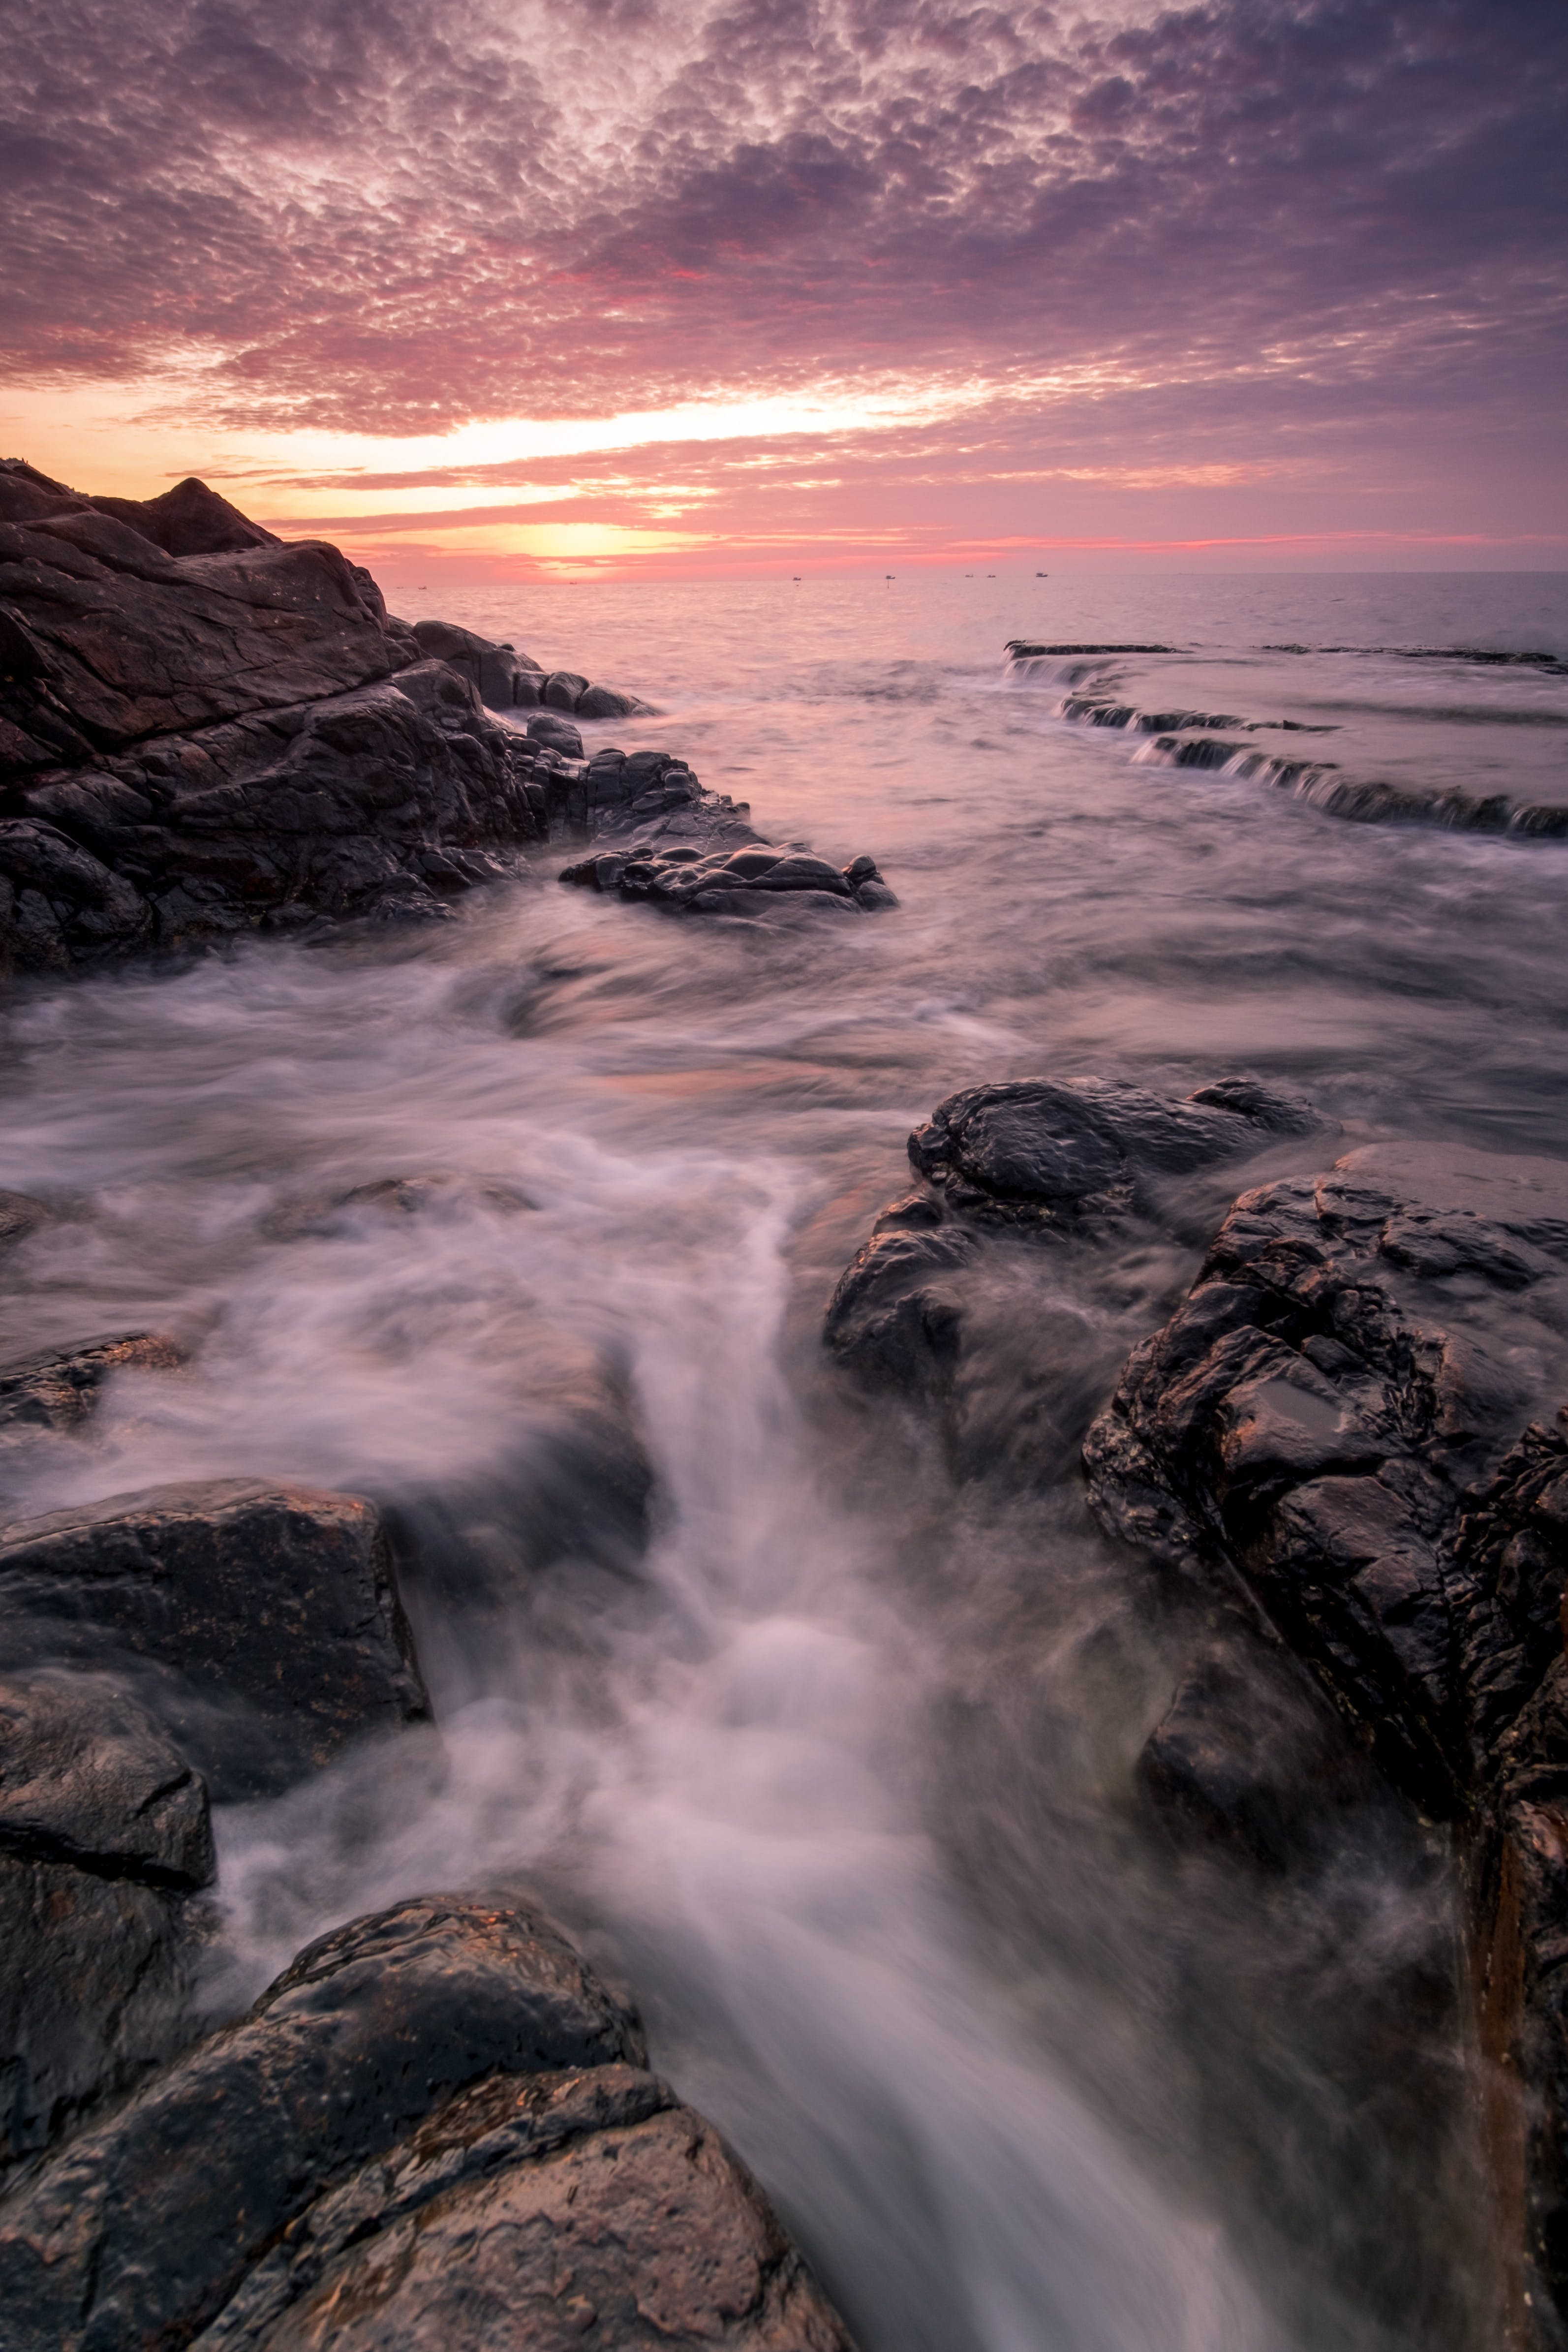 Running Water With Rock Formation during Golden Hour